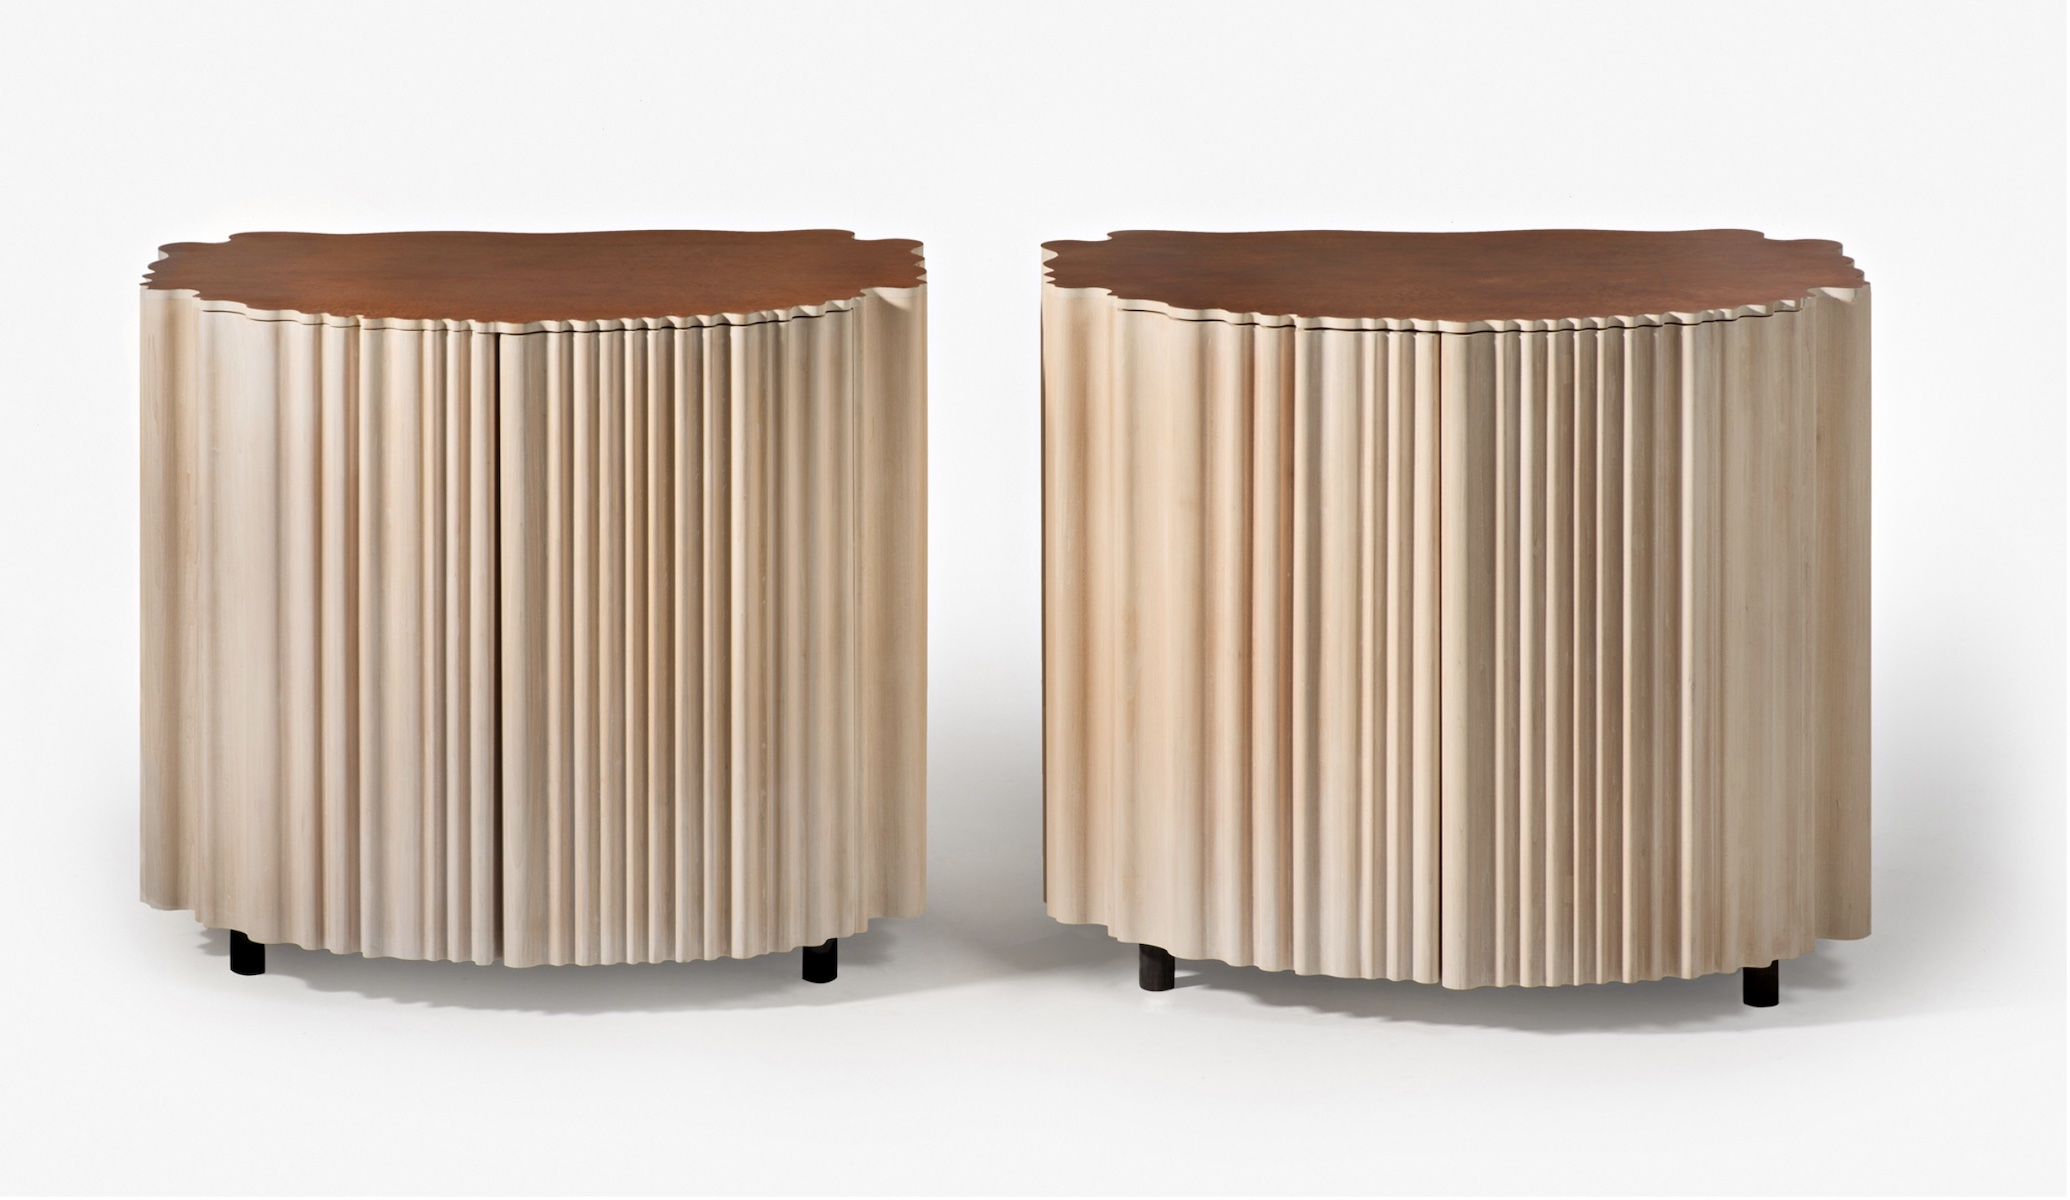 Pearl Cabinets by artist Christopher Kurtz